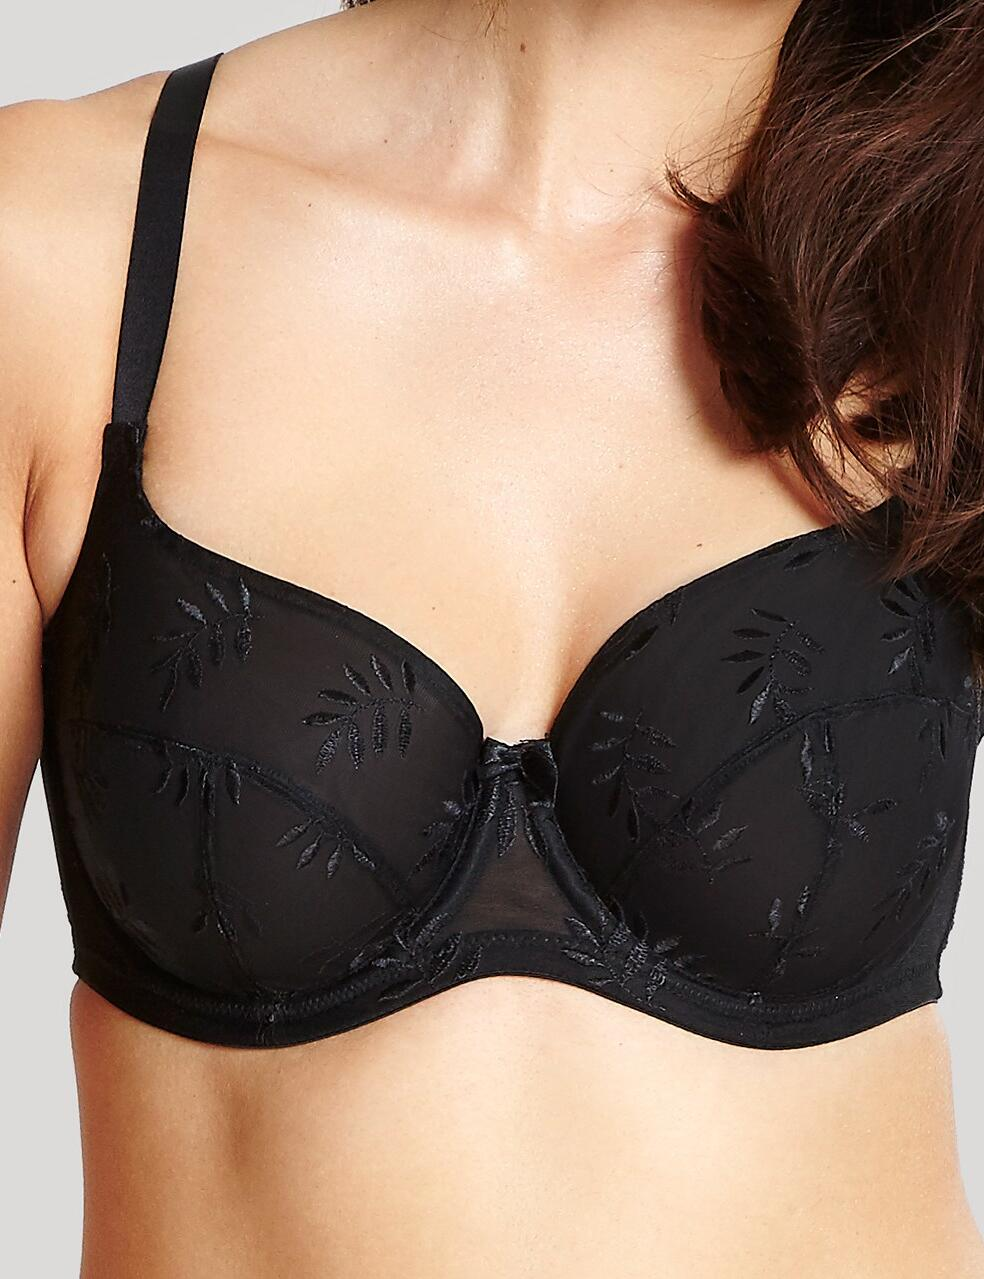 Panache Tango : Underwired Balconette Bra: 3251 - Black